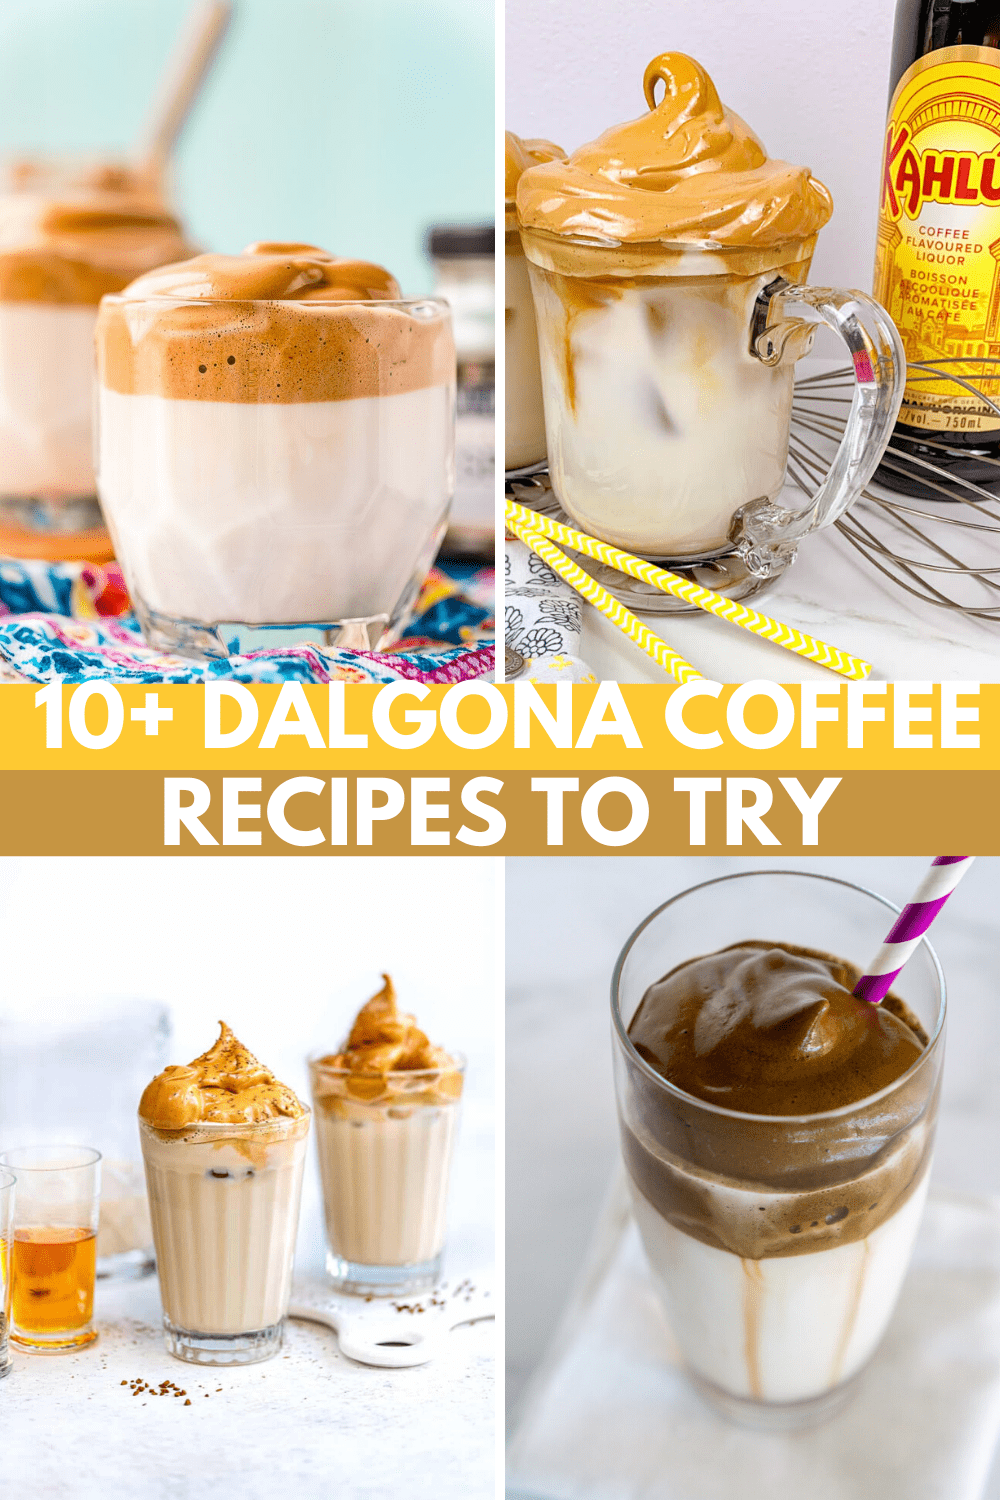 10+ Dalgona Coffee Recipes: Try Whipped Coffee Today!